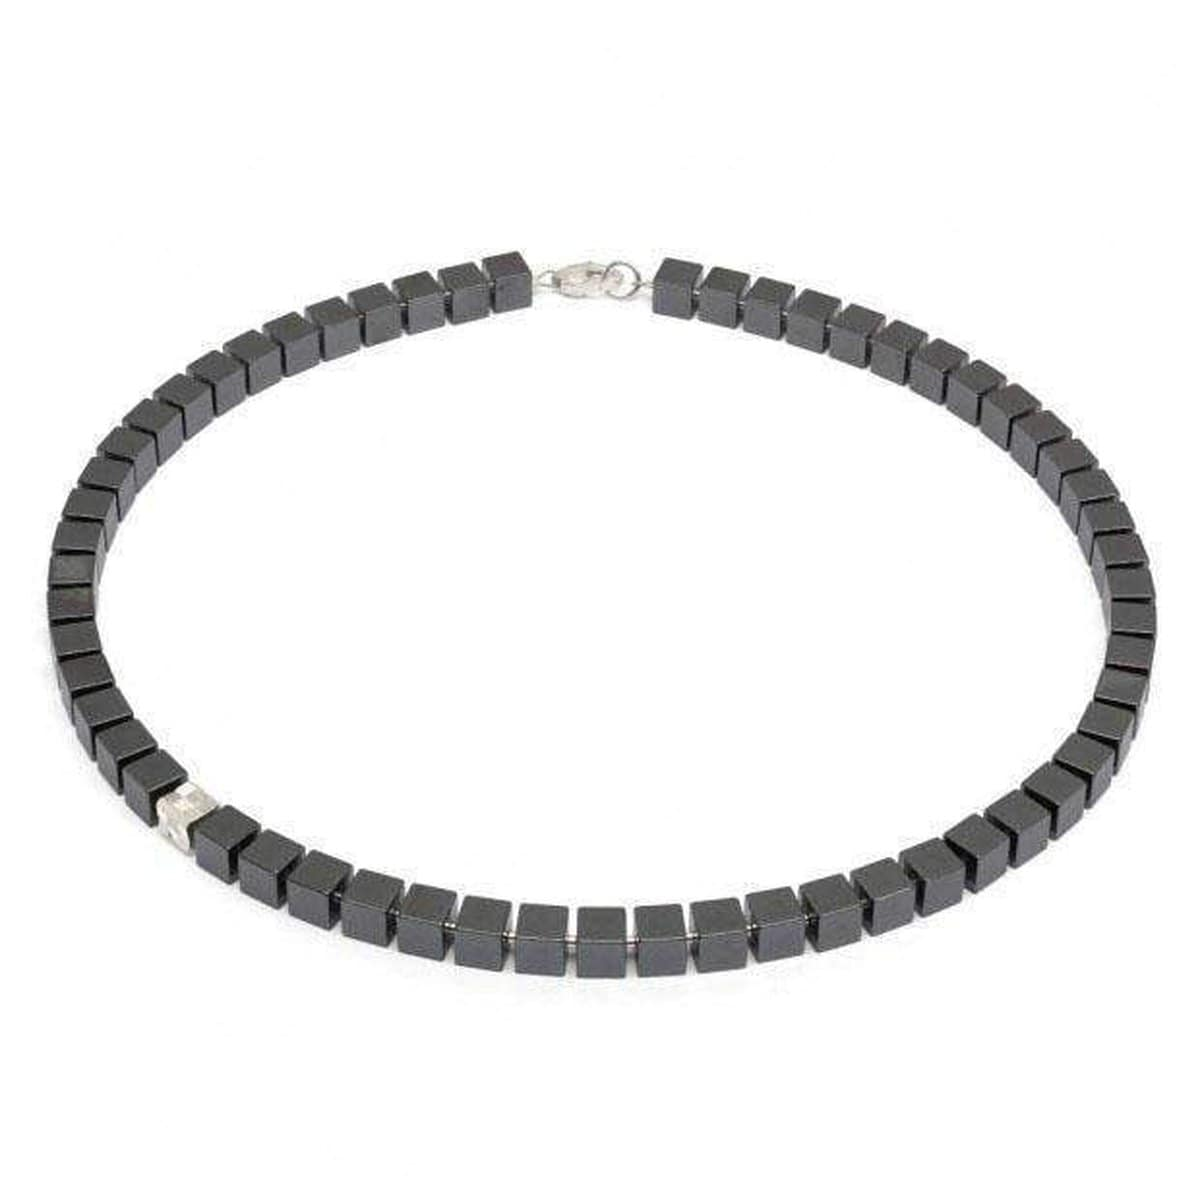 Weluno Hematine Necklace - 84431204